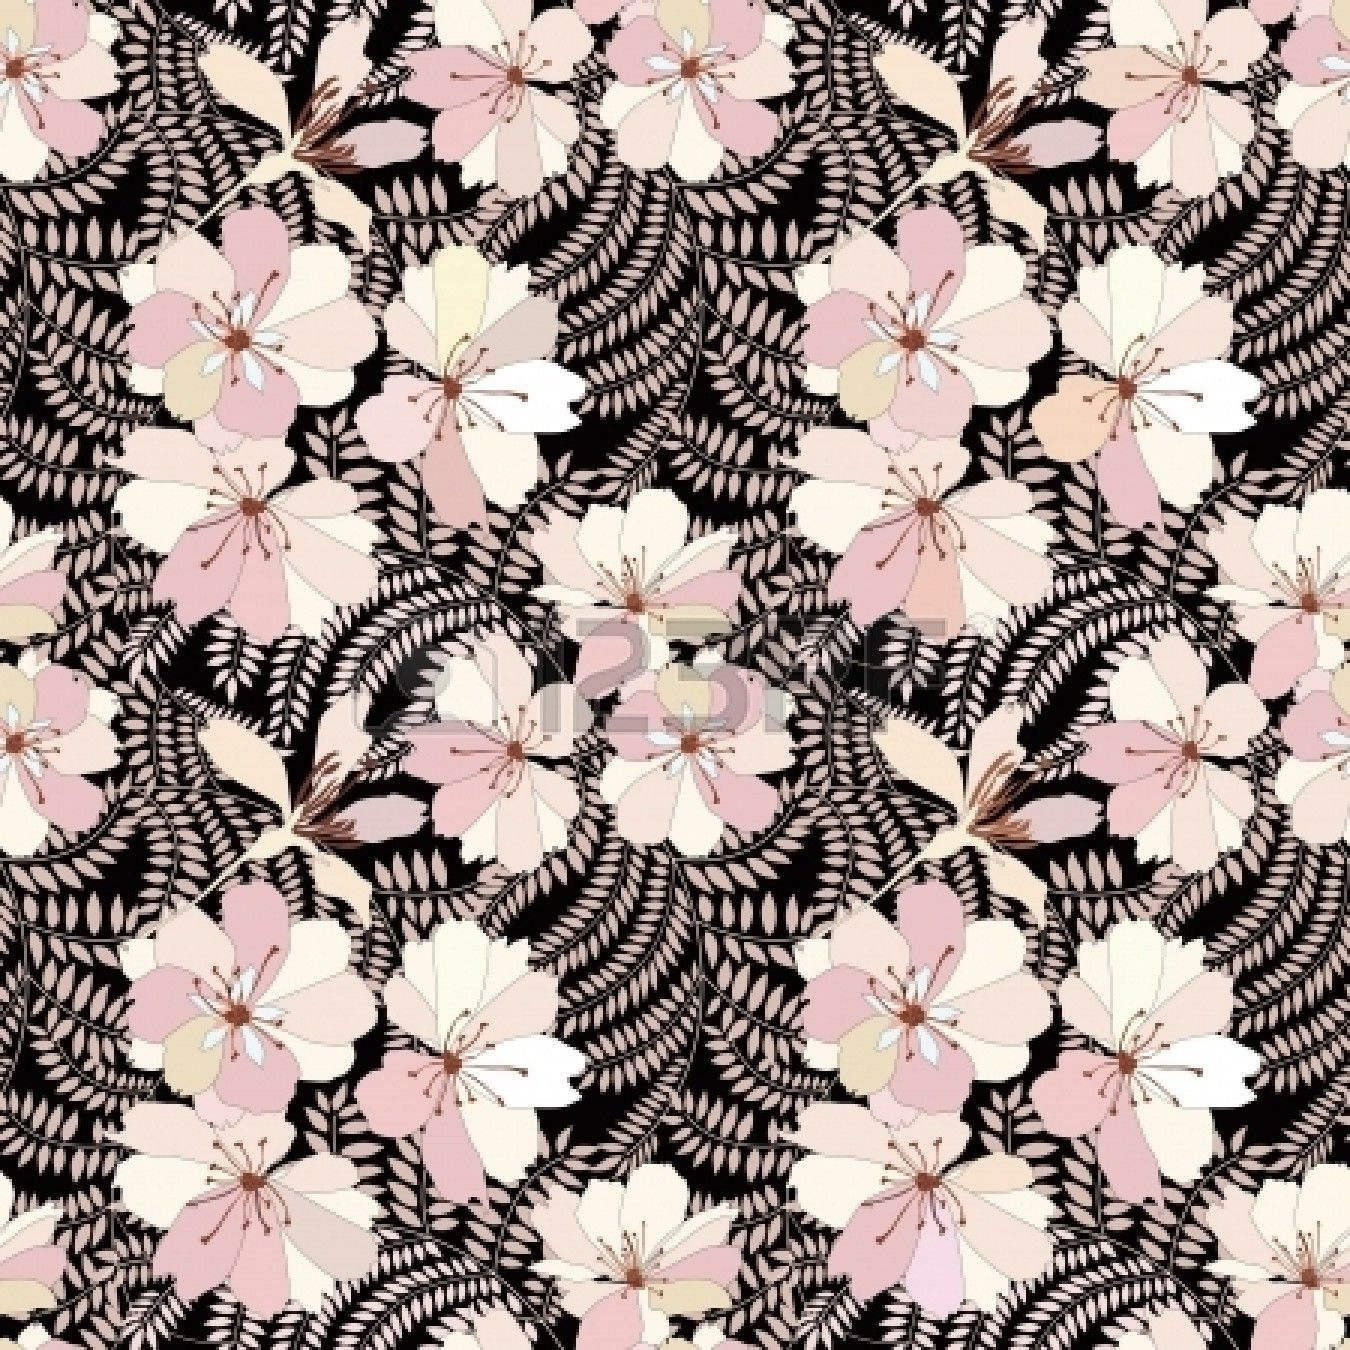 http://us.123rf.com/450wm/terriana/terriana1308/terriana130800065/22204514-floral-seamless-background-decorative-flower-pattern.jpg